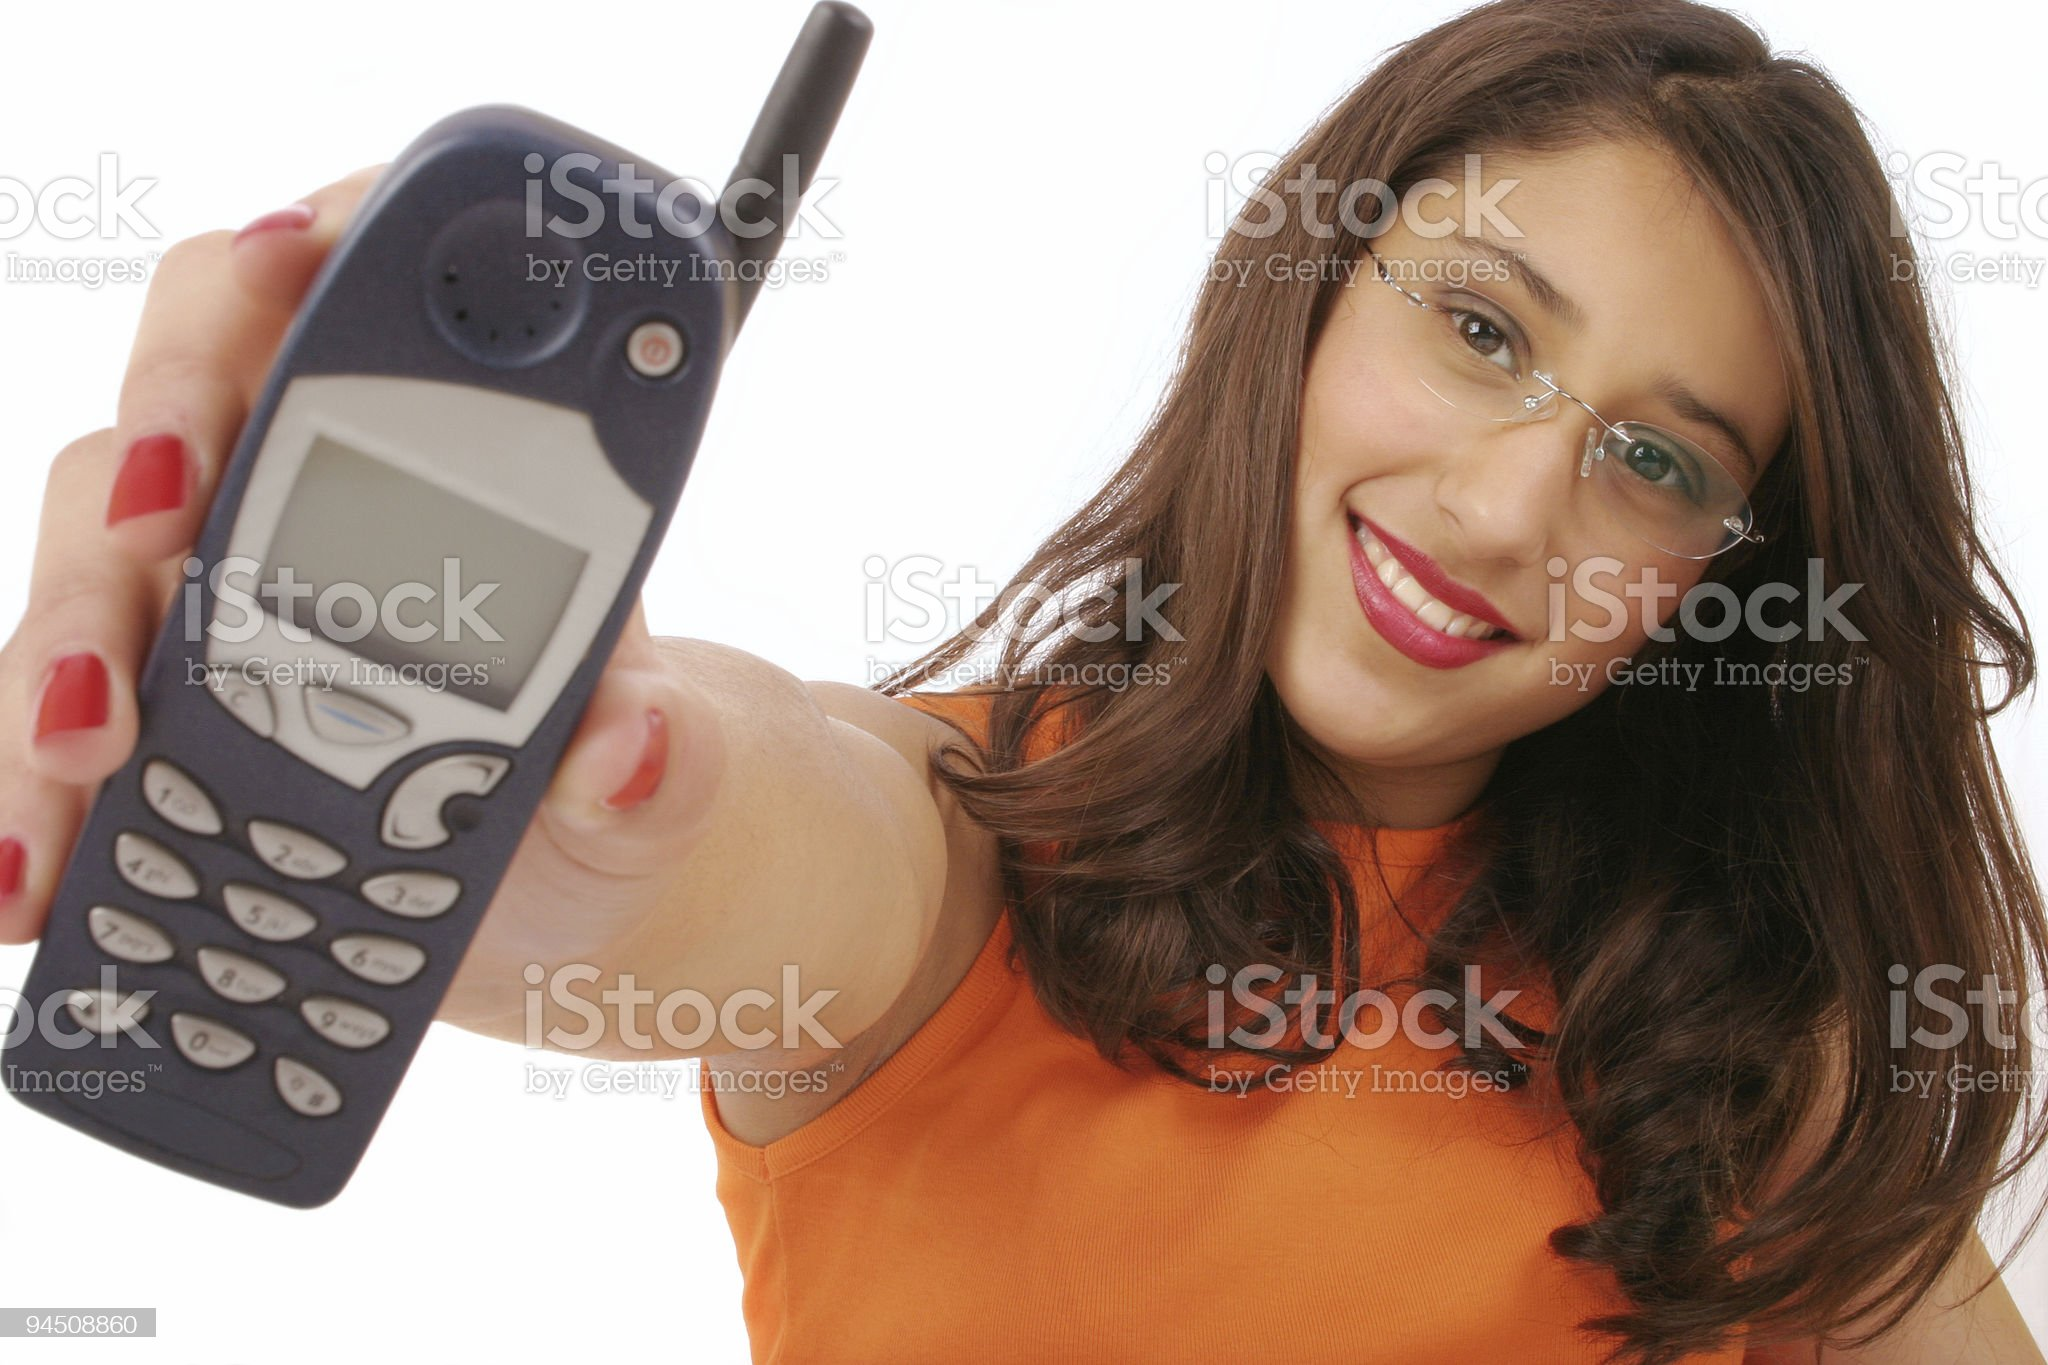 Beautiful girl with old mobile phone royalty-free stock photo